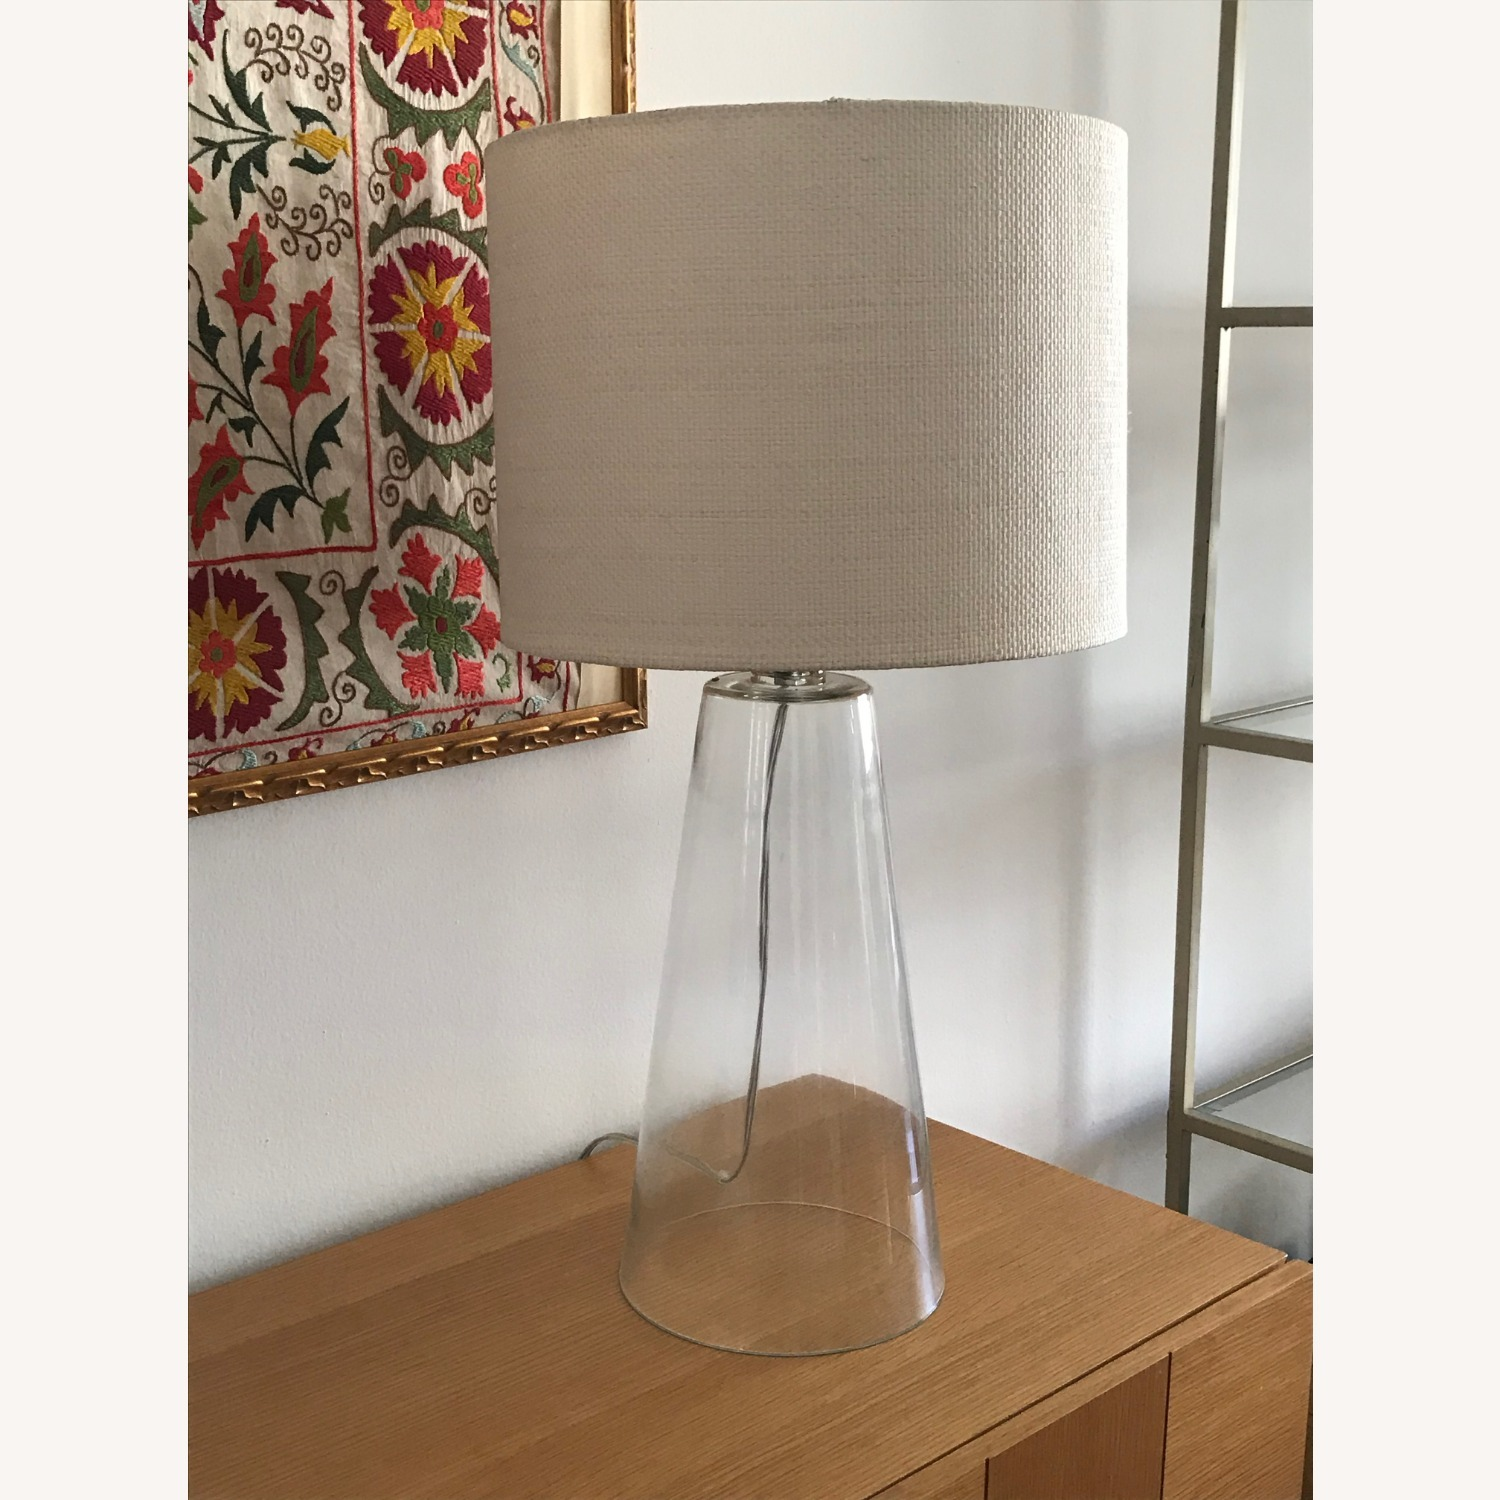 Glass Table Lamp with White Shade - image-3